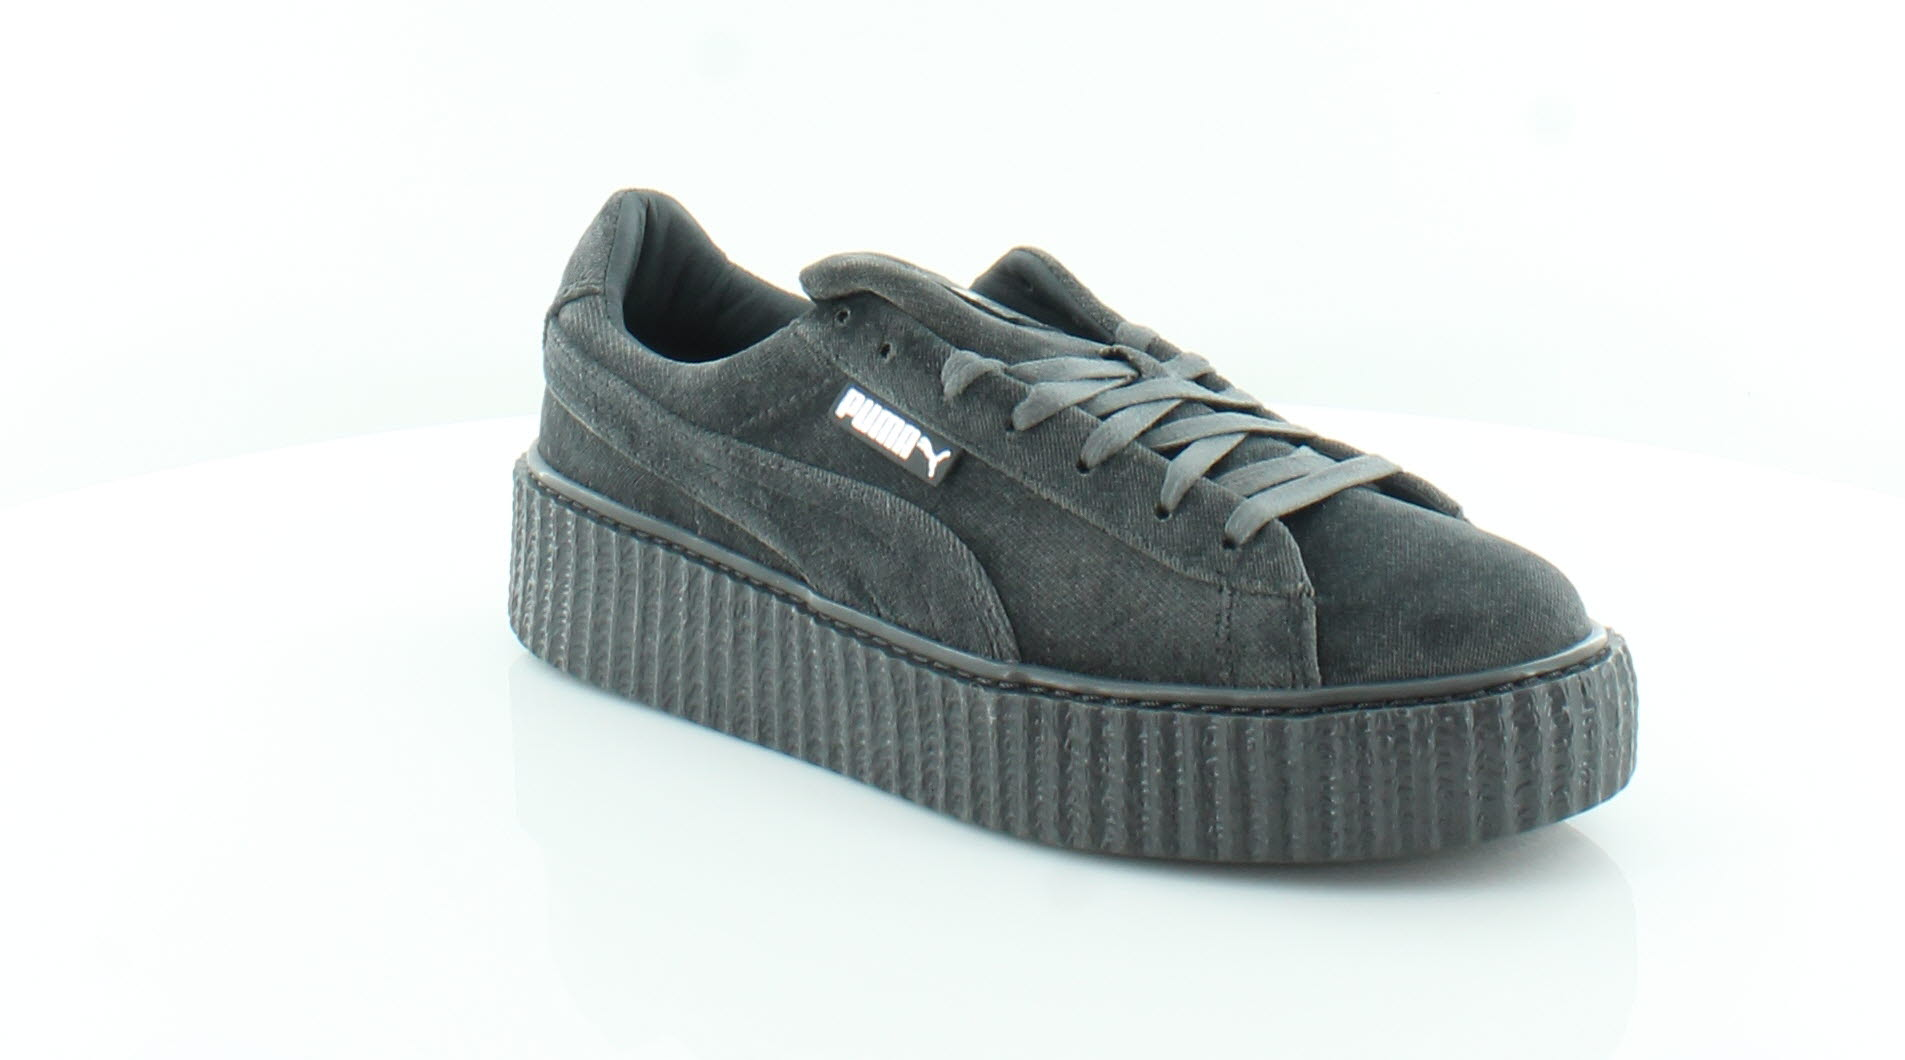 459d45fbdc3a Fenty Puma by Rihanna Velvet Creepers Women s Fashion Sneakers Glacier Gray